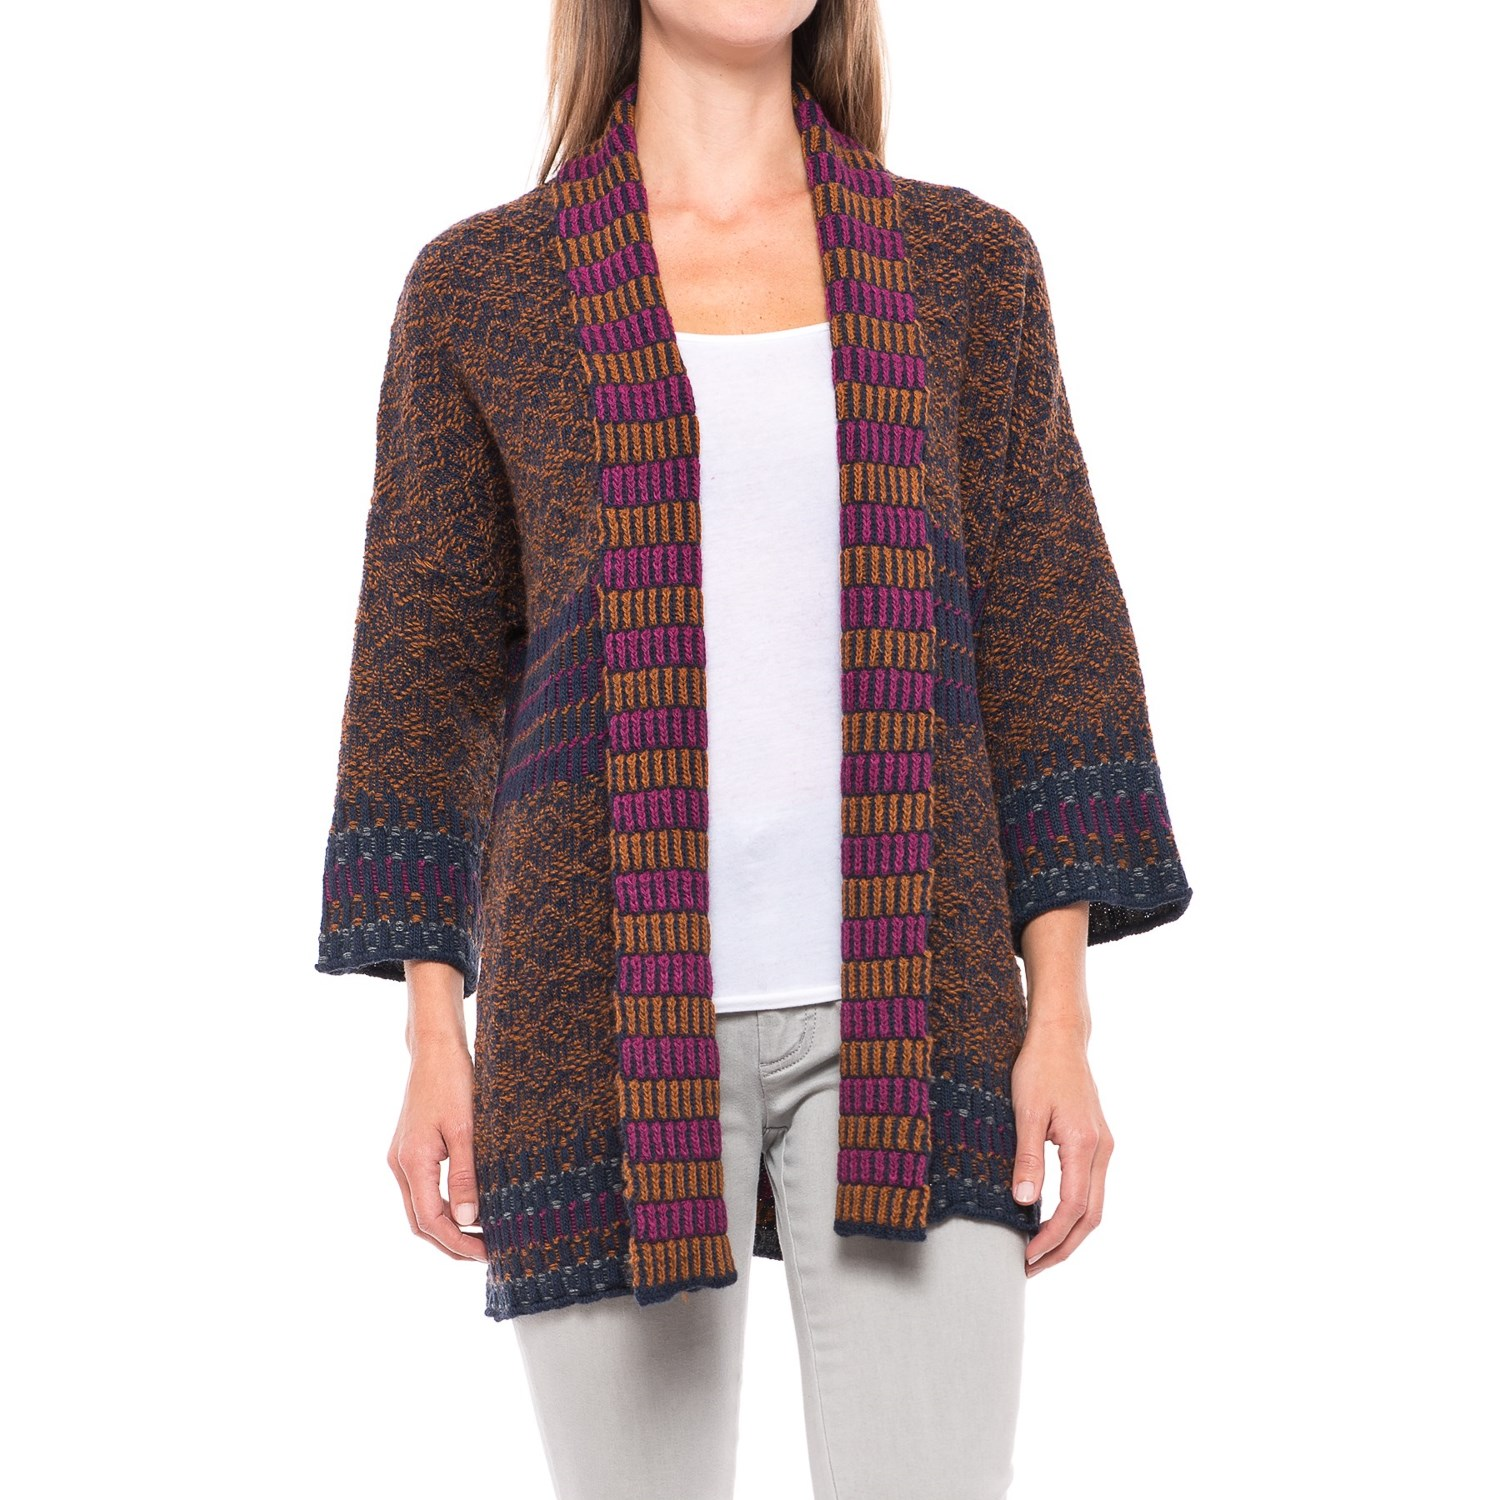 Lineamaglia Kimono Sleeve Cardigan Sweater (For Women) - Save 51%